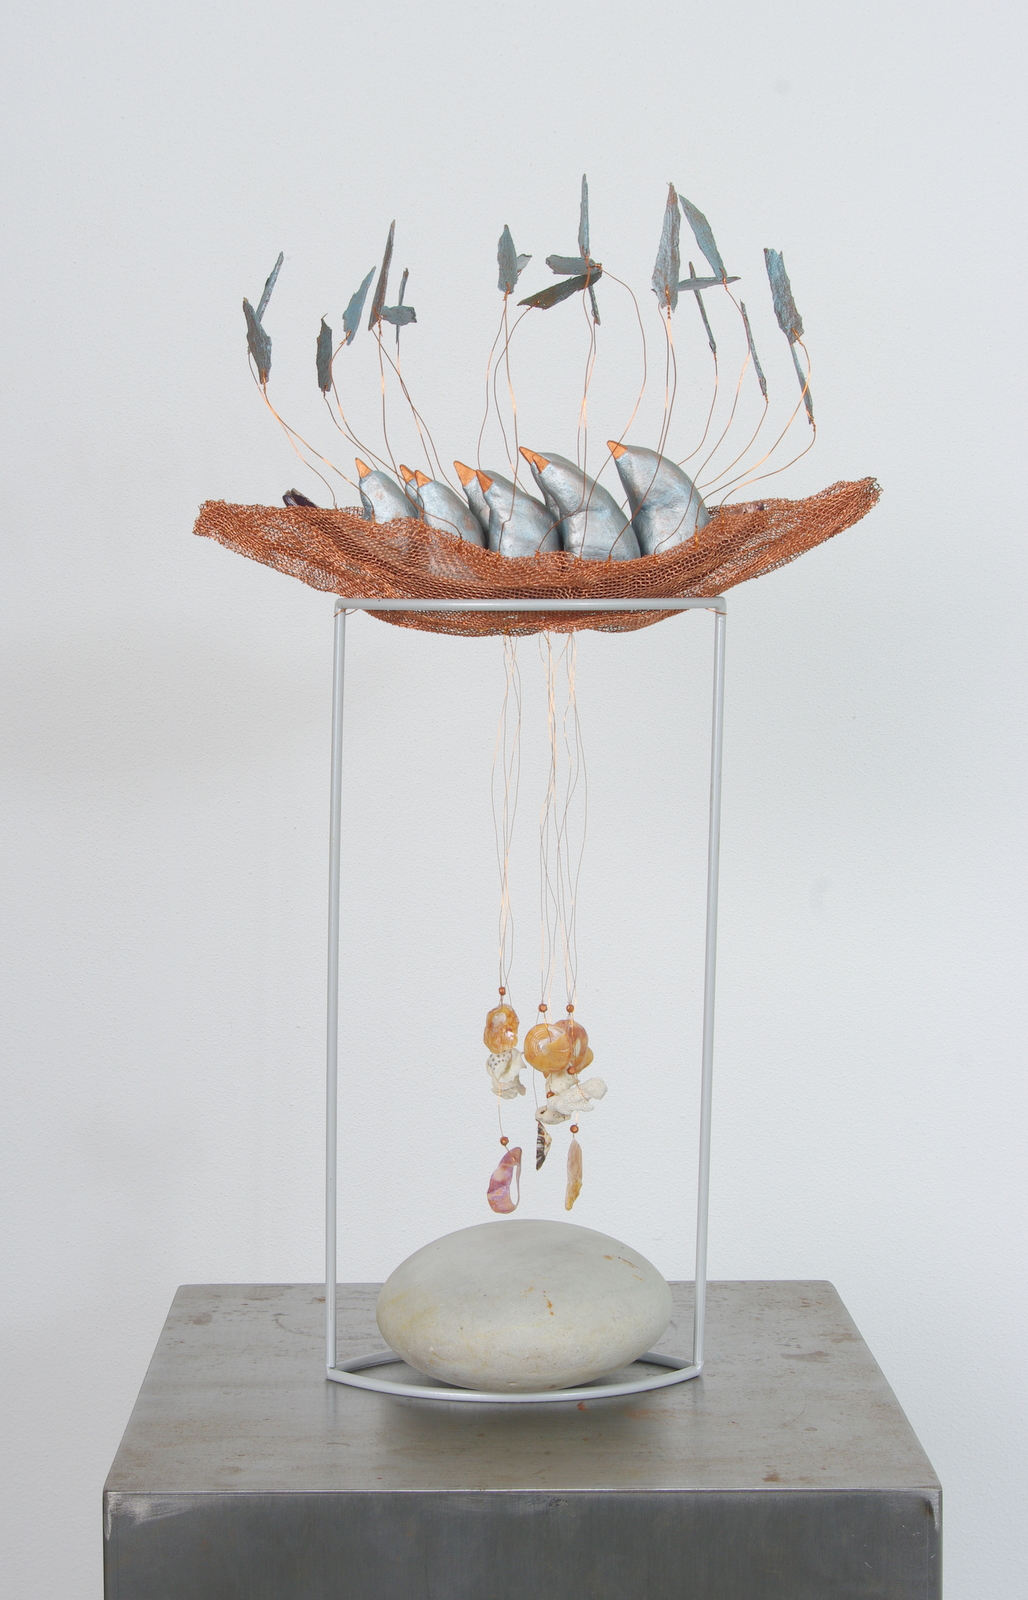 2015<br>26 x 17 x 45 cm<br>copper mesh, paperclay, eucalyptus, shells, stone